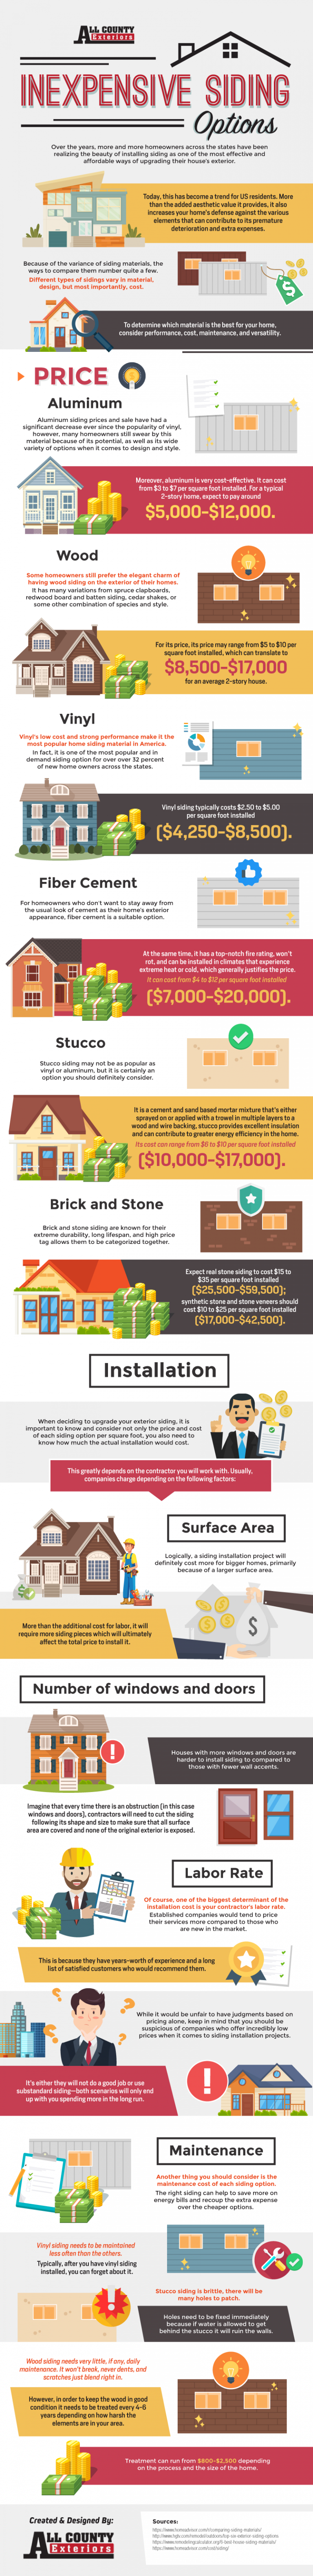 Inexpensive Siding Options (Infographic)